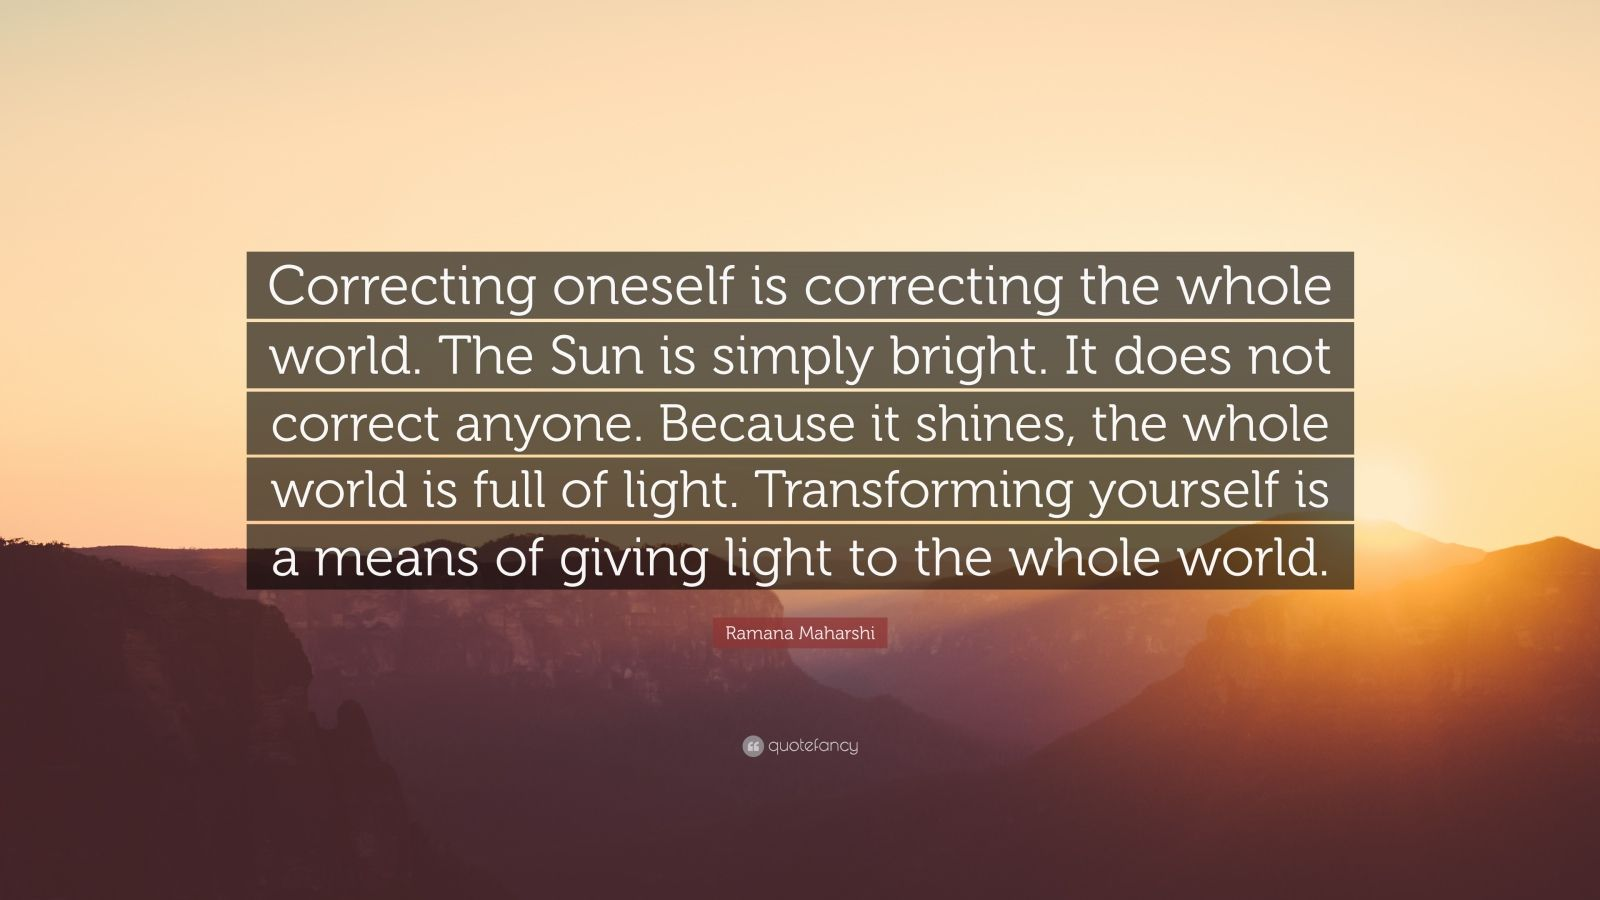 """Ramana Maharshi Quote: """"Correcting oneself is correcting the whole world. The Sun is simply bright. It does not correct anyone. Because it shines, the whole world is full of light. Transforming yourself is a means of giving light to the whole world."""""""